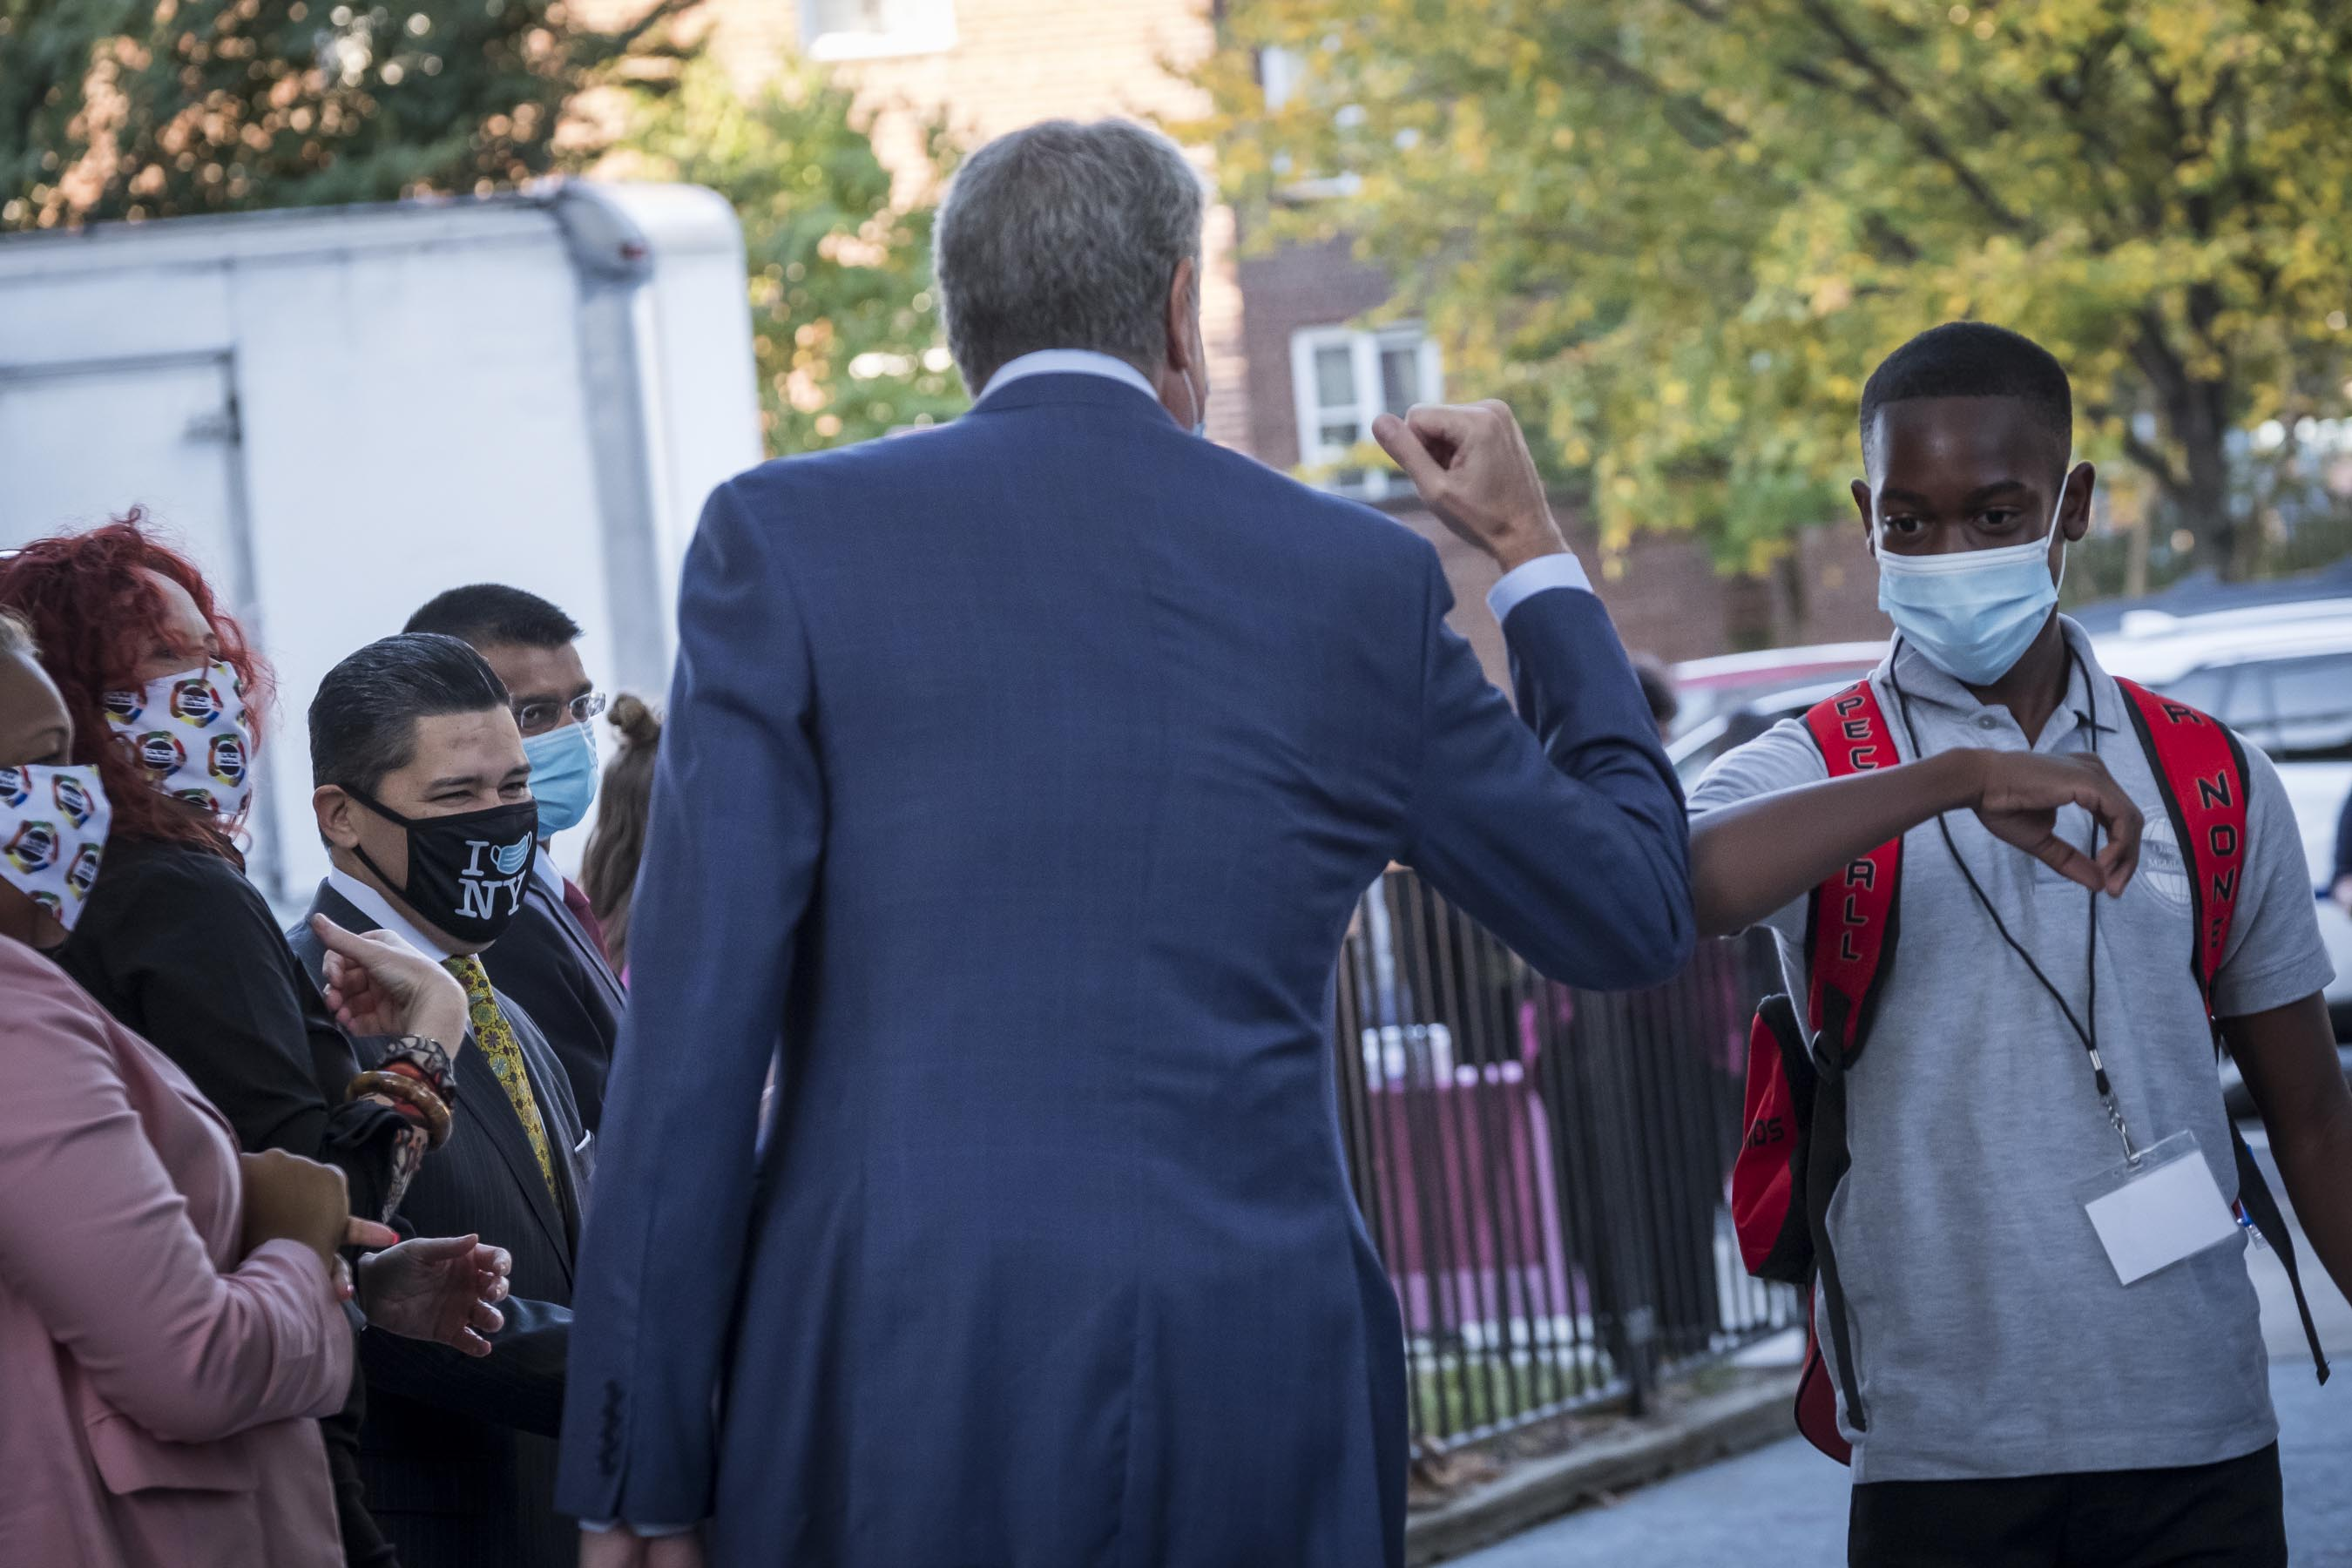 Mayor Bill de Blasio, Chancellor Richard Carranza and Department of Health and Mental Hygiene Commissioner Dave Chokshi welcome students back to One World Middle School at Edenwald in the Bronx on Oct. 1.